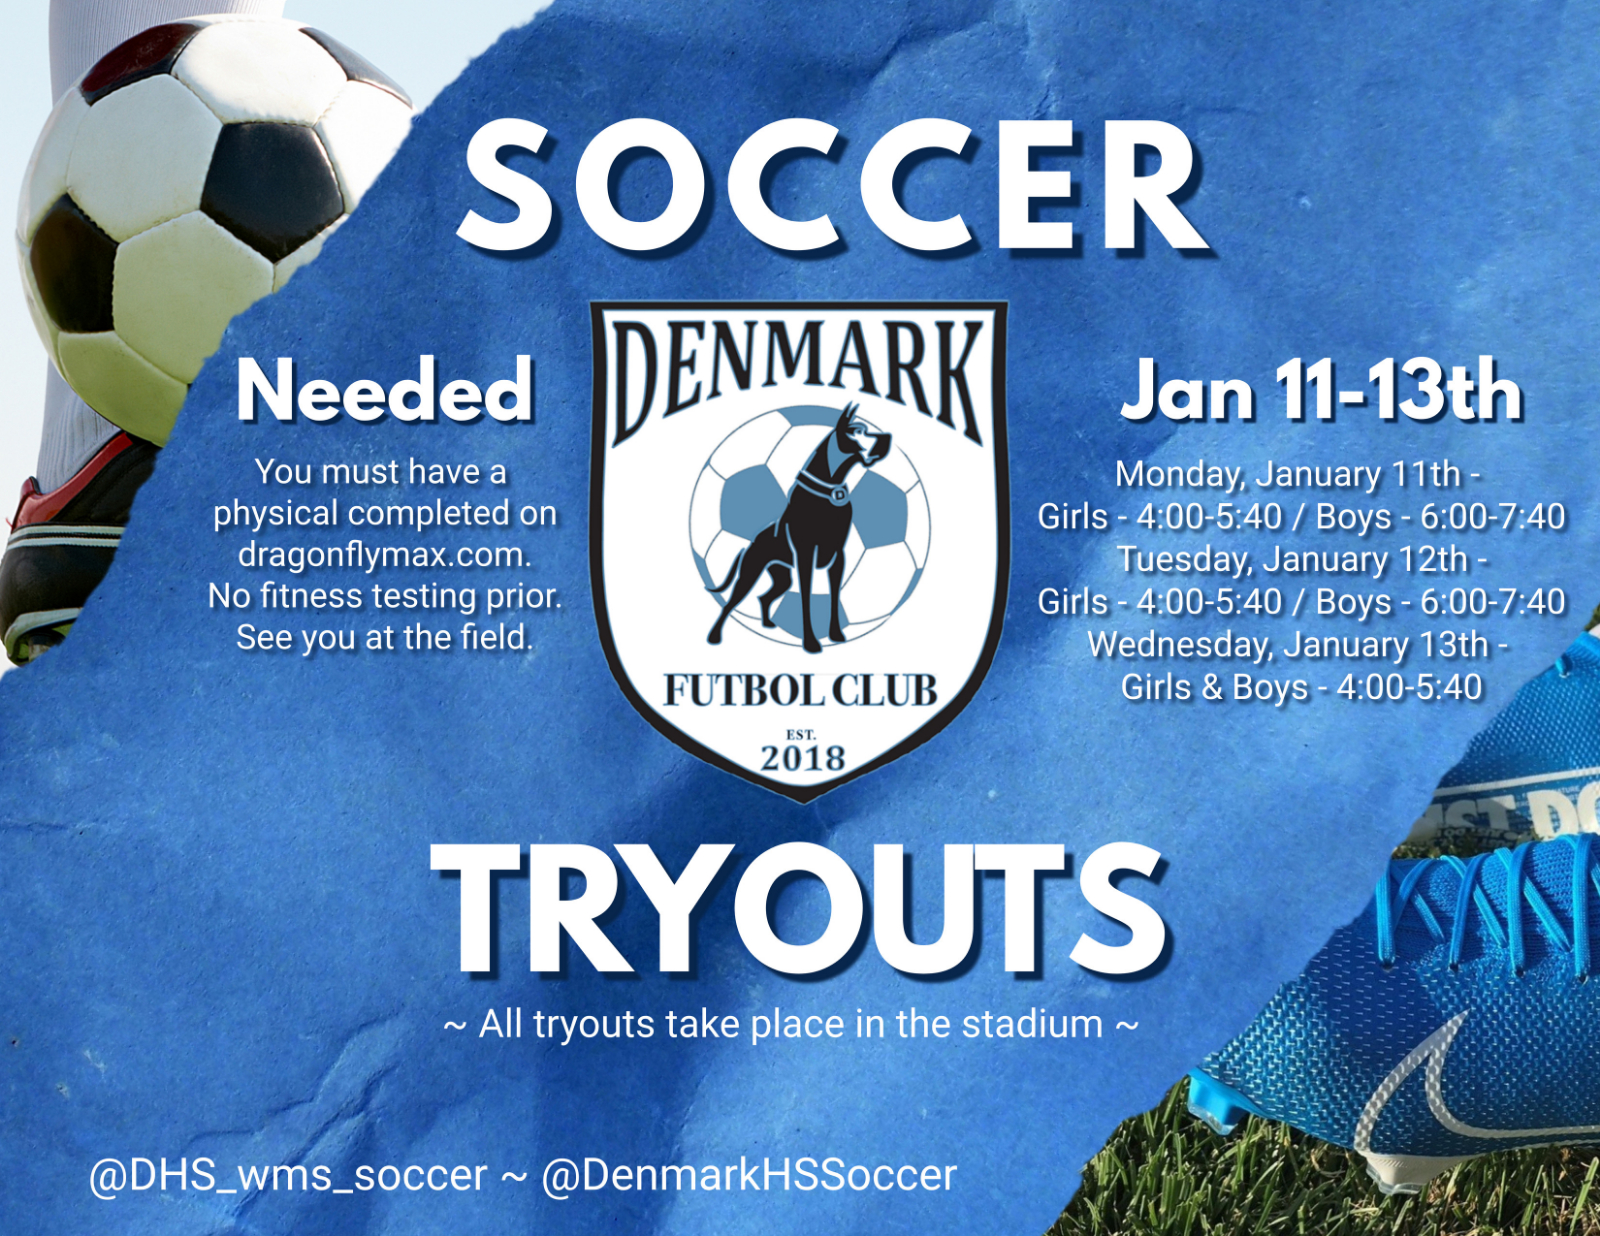 Denmark Soccer Tryouts Announced